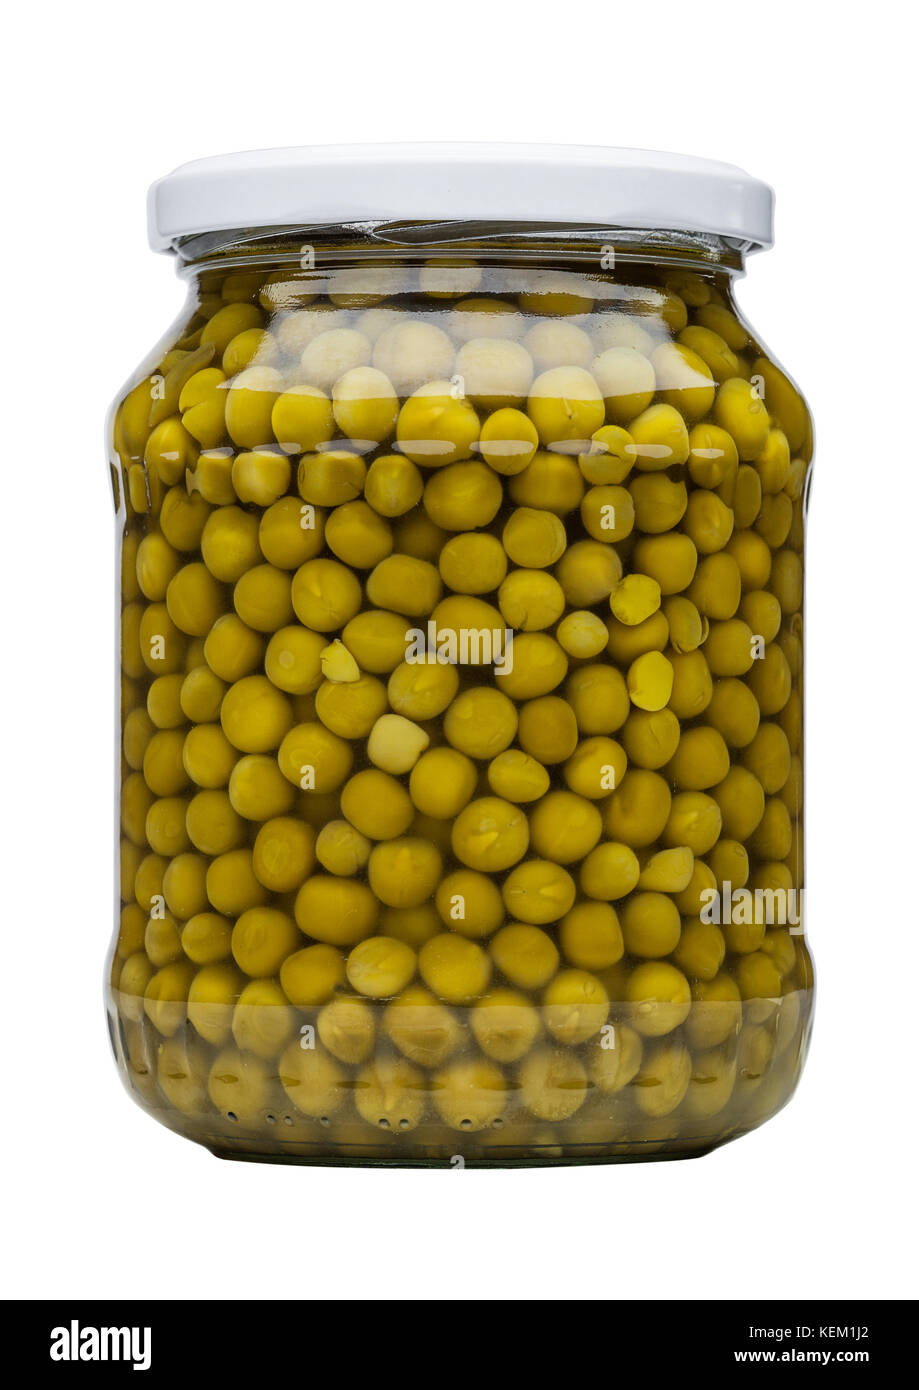 Glass jar of preserved peas isolated on white background - Stock Image